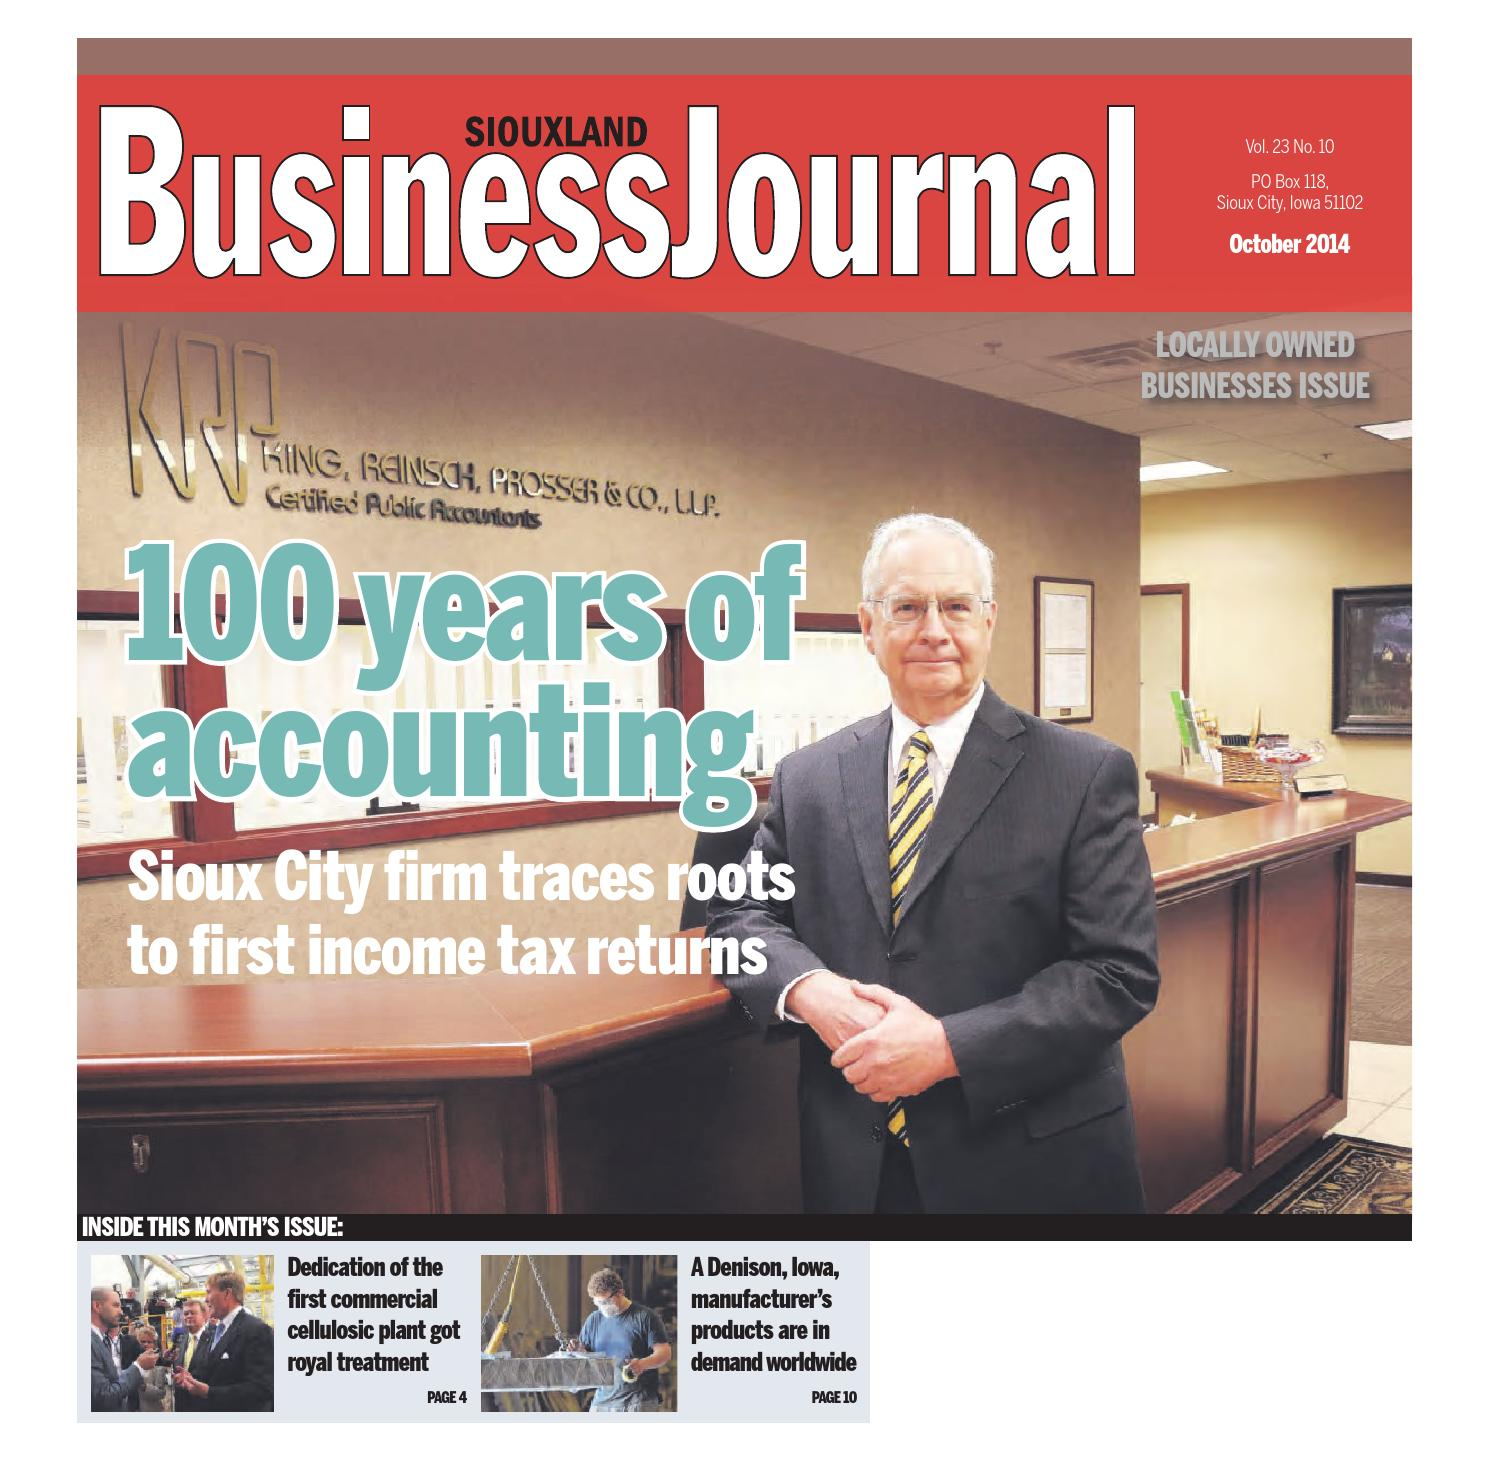 siouxland business journal october 2014 by sioux city journal